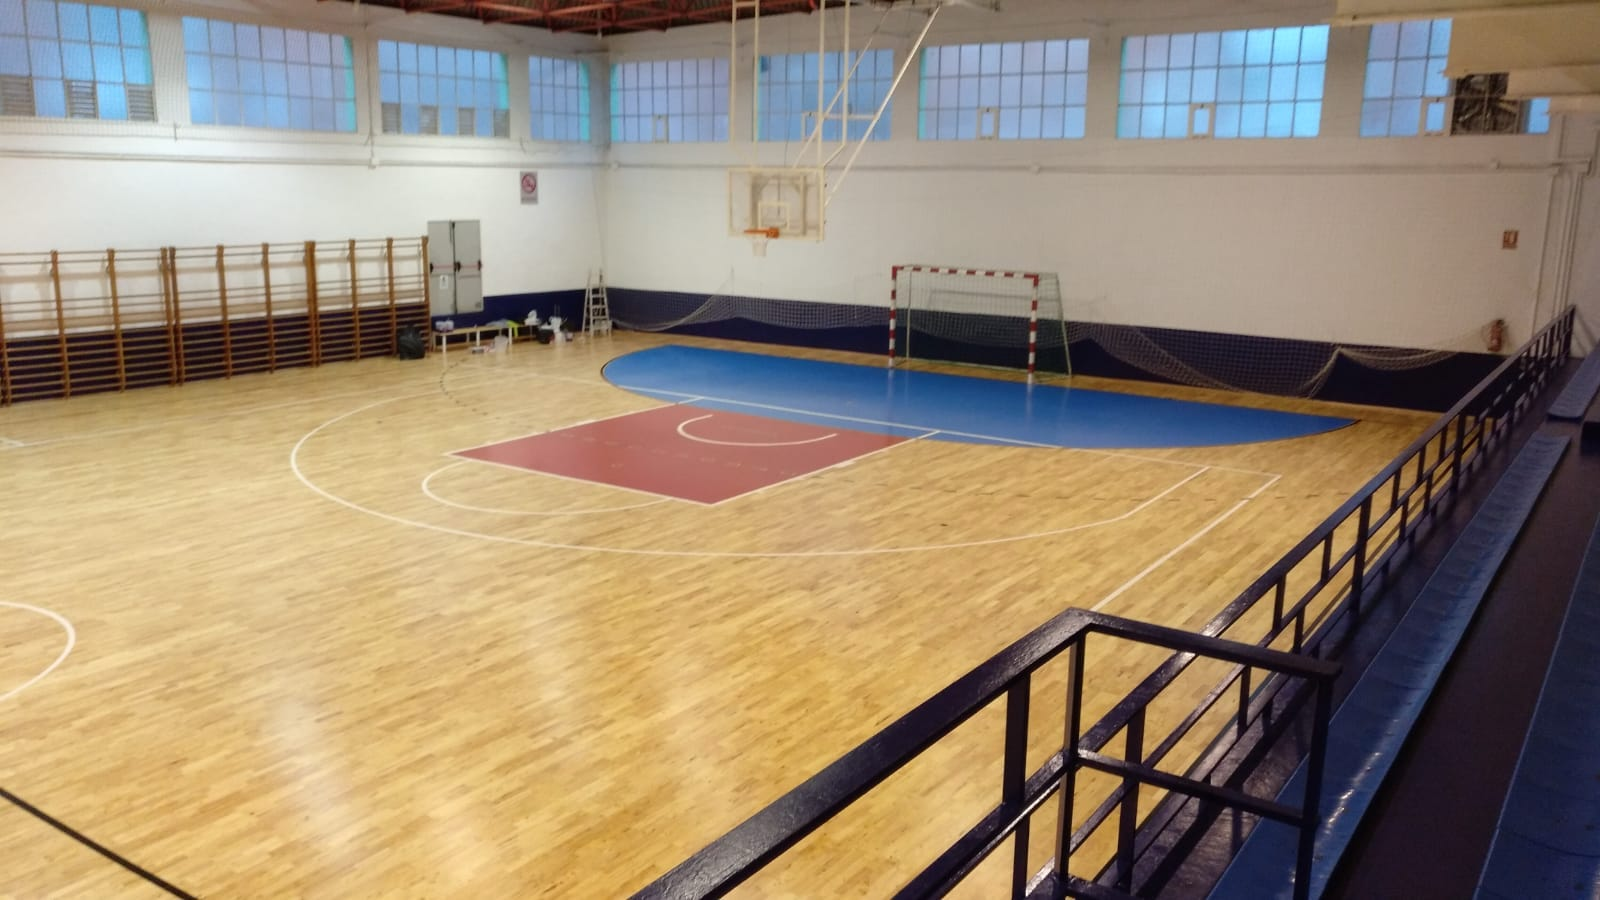 Futsal and basketball together for the third multi-purpose facility